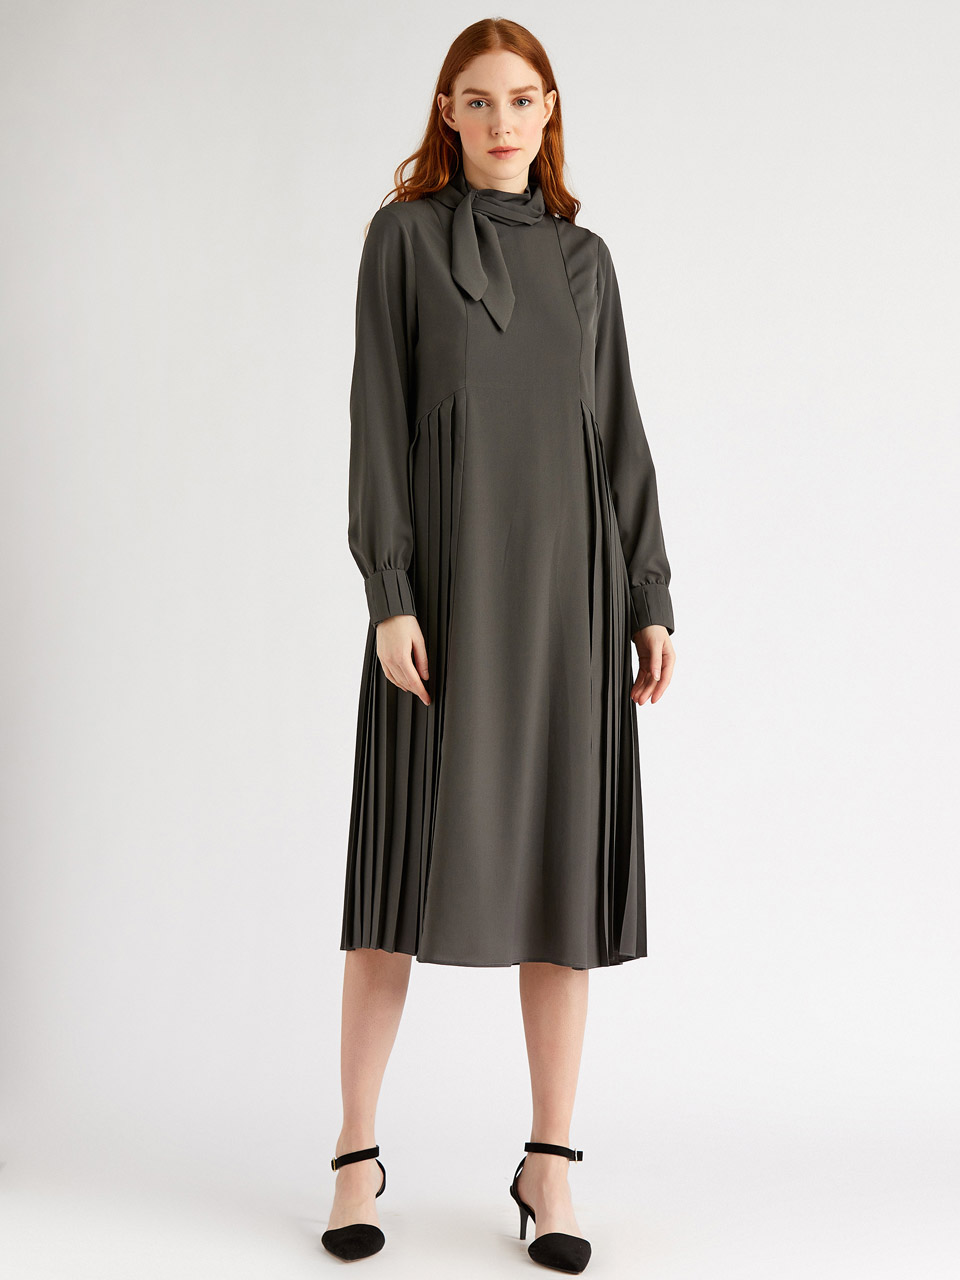 Comfortable Dress With Neck Collar